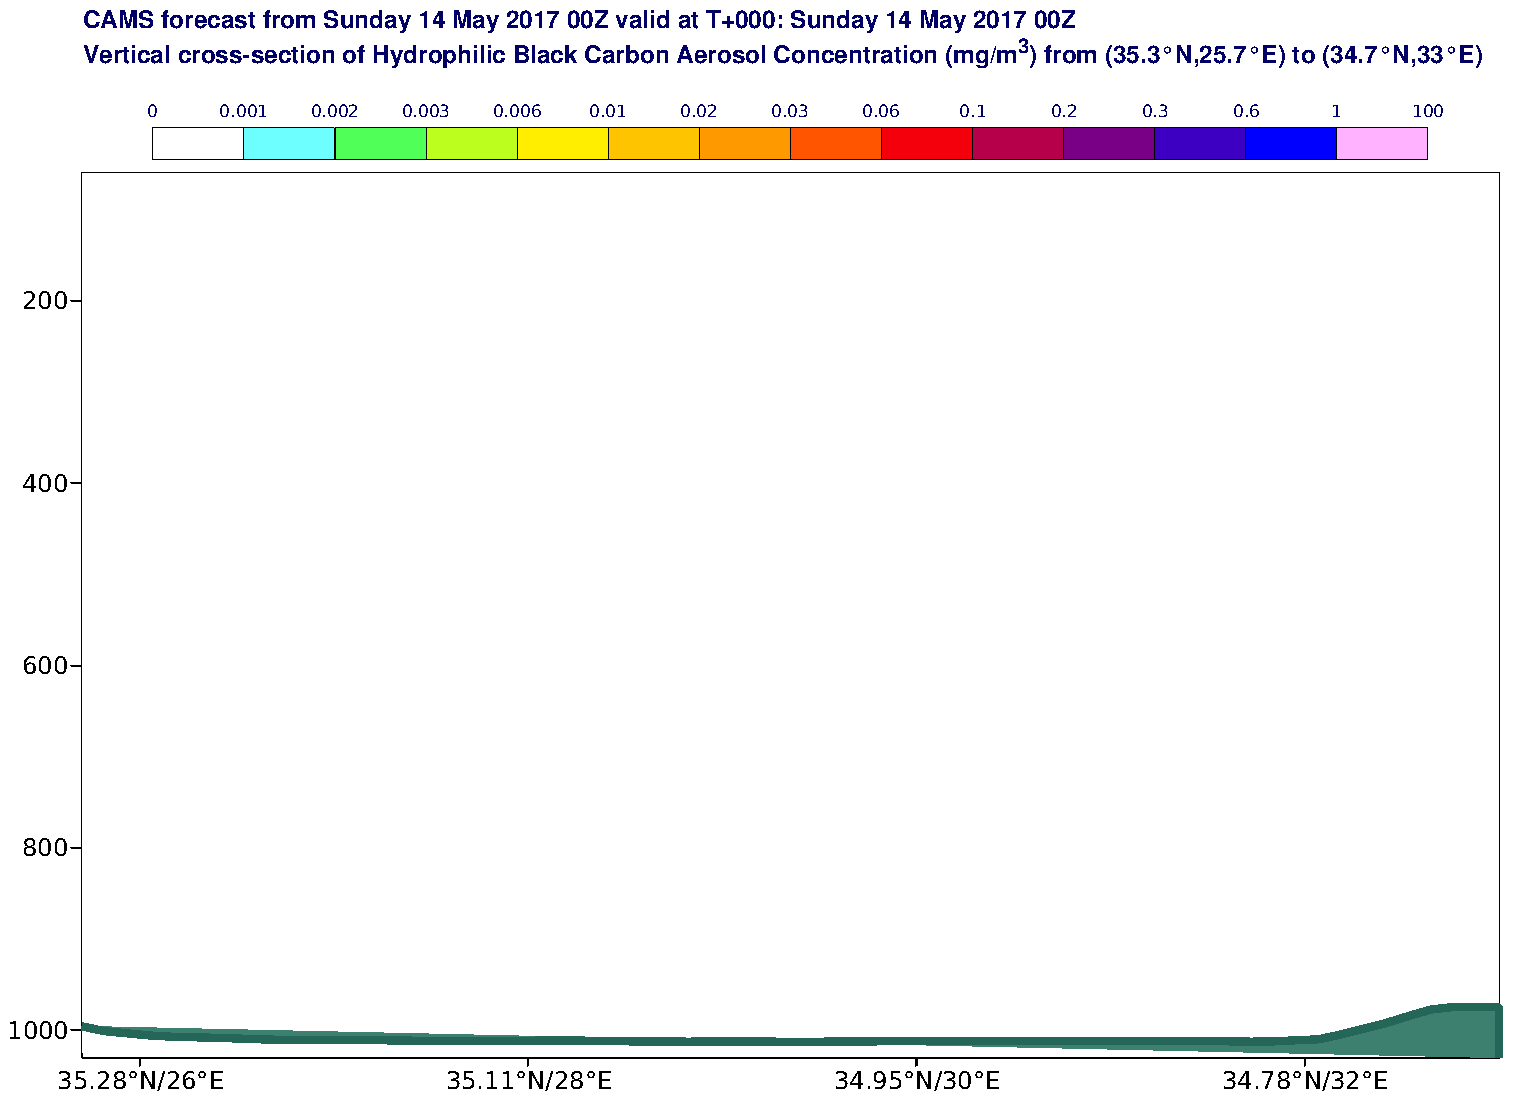 Vertical cross-section of Hydrophilic Black Carbon Aerosol Concentration (mg/m3) valid at T0 - 2017-05-14 00:00